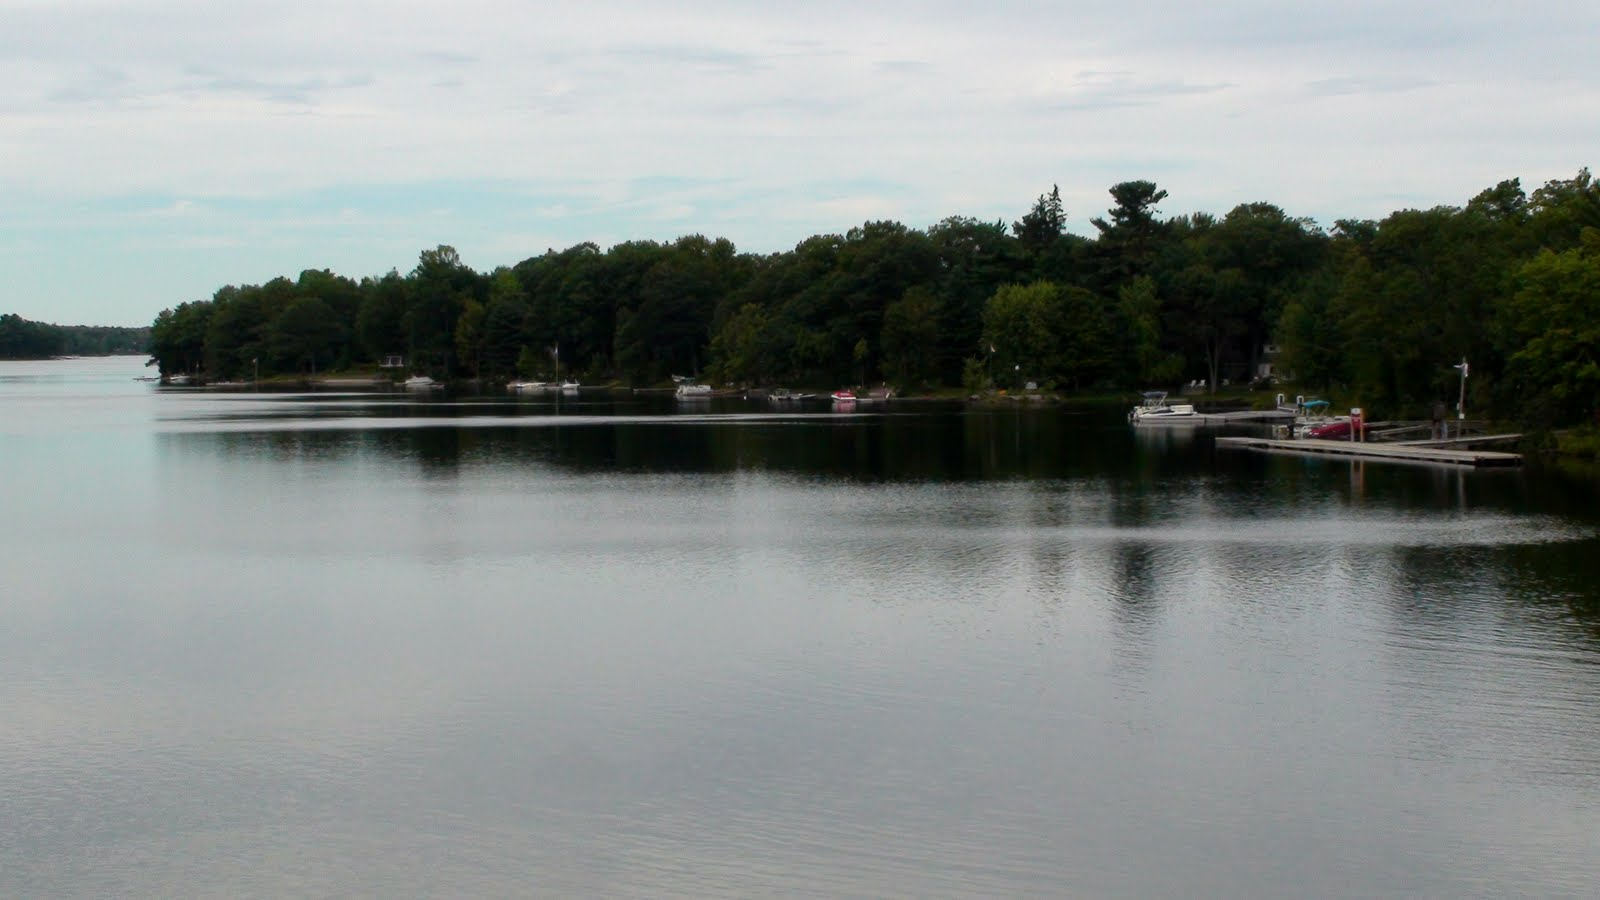 Lake with cottages